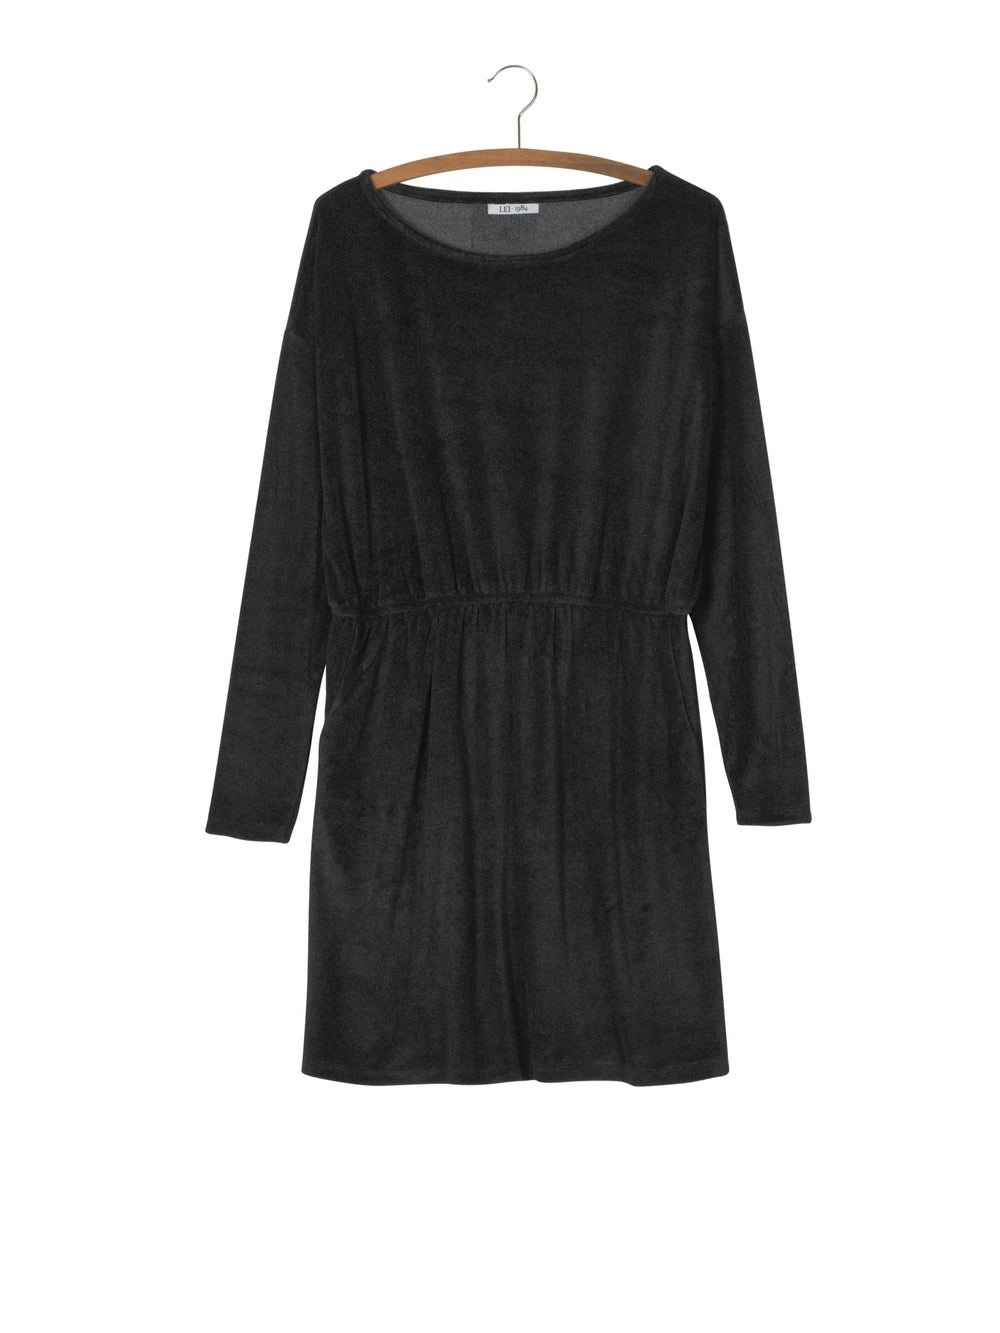 Image of Robe velours DIANE 109€ -60%